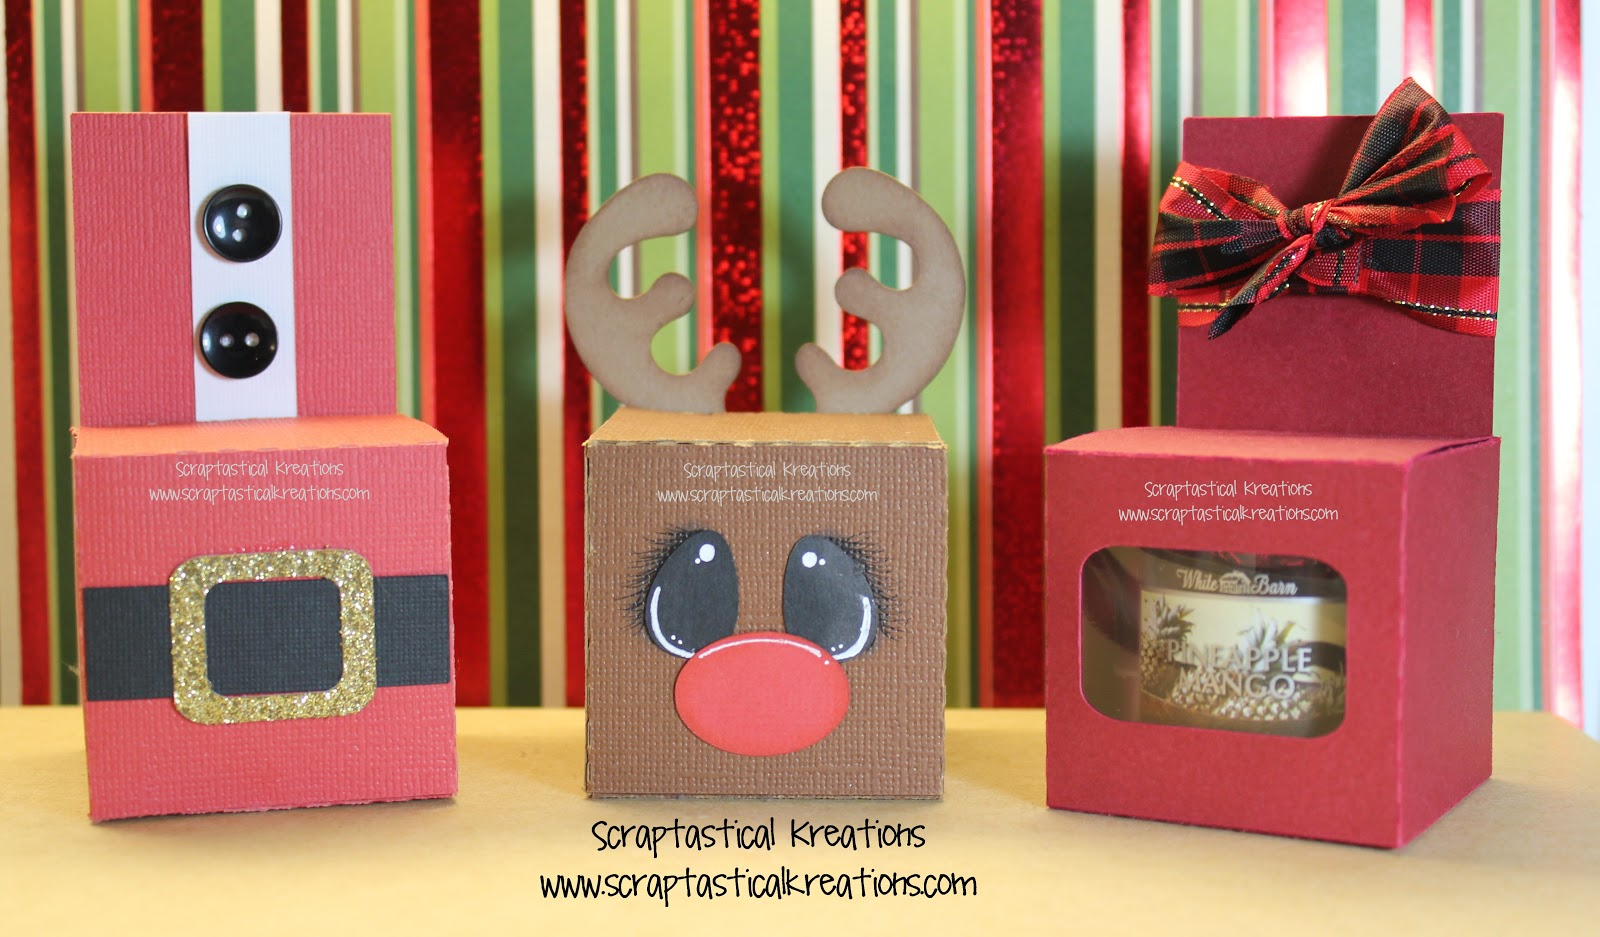 Scraptastical Kreations: CUTE Candle Boxes and Sanitizer Holders